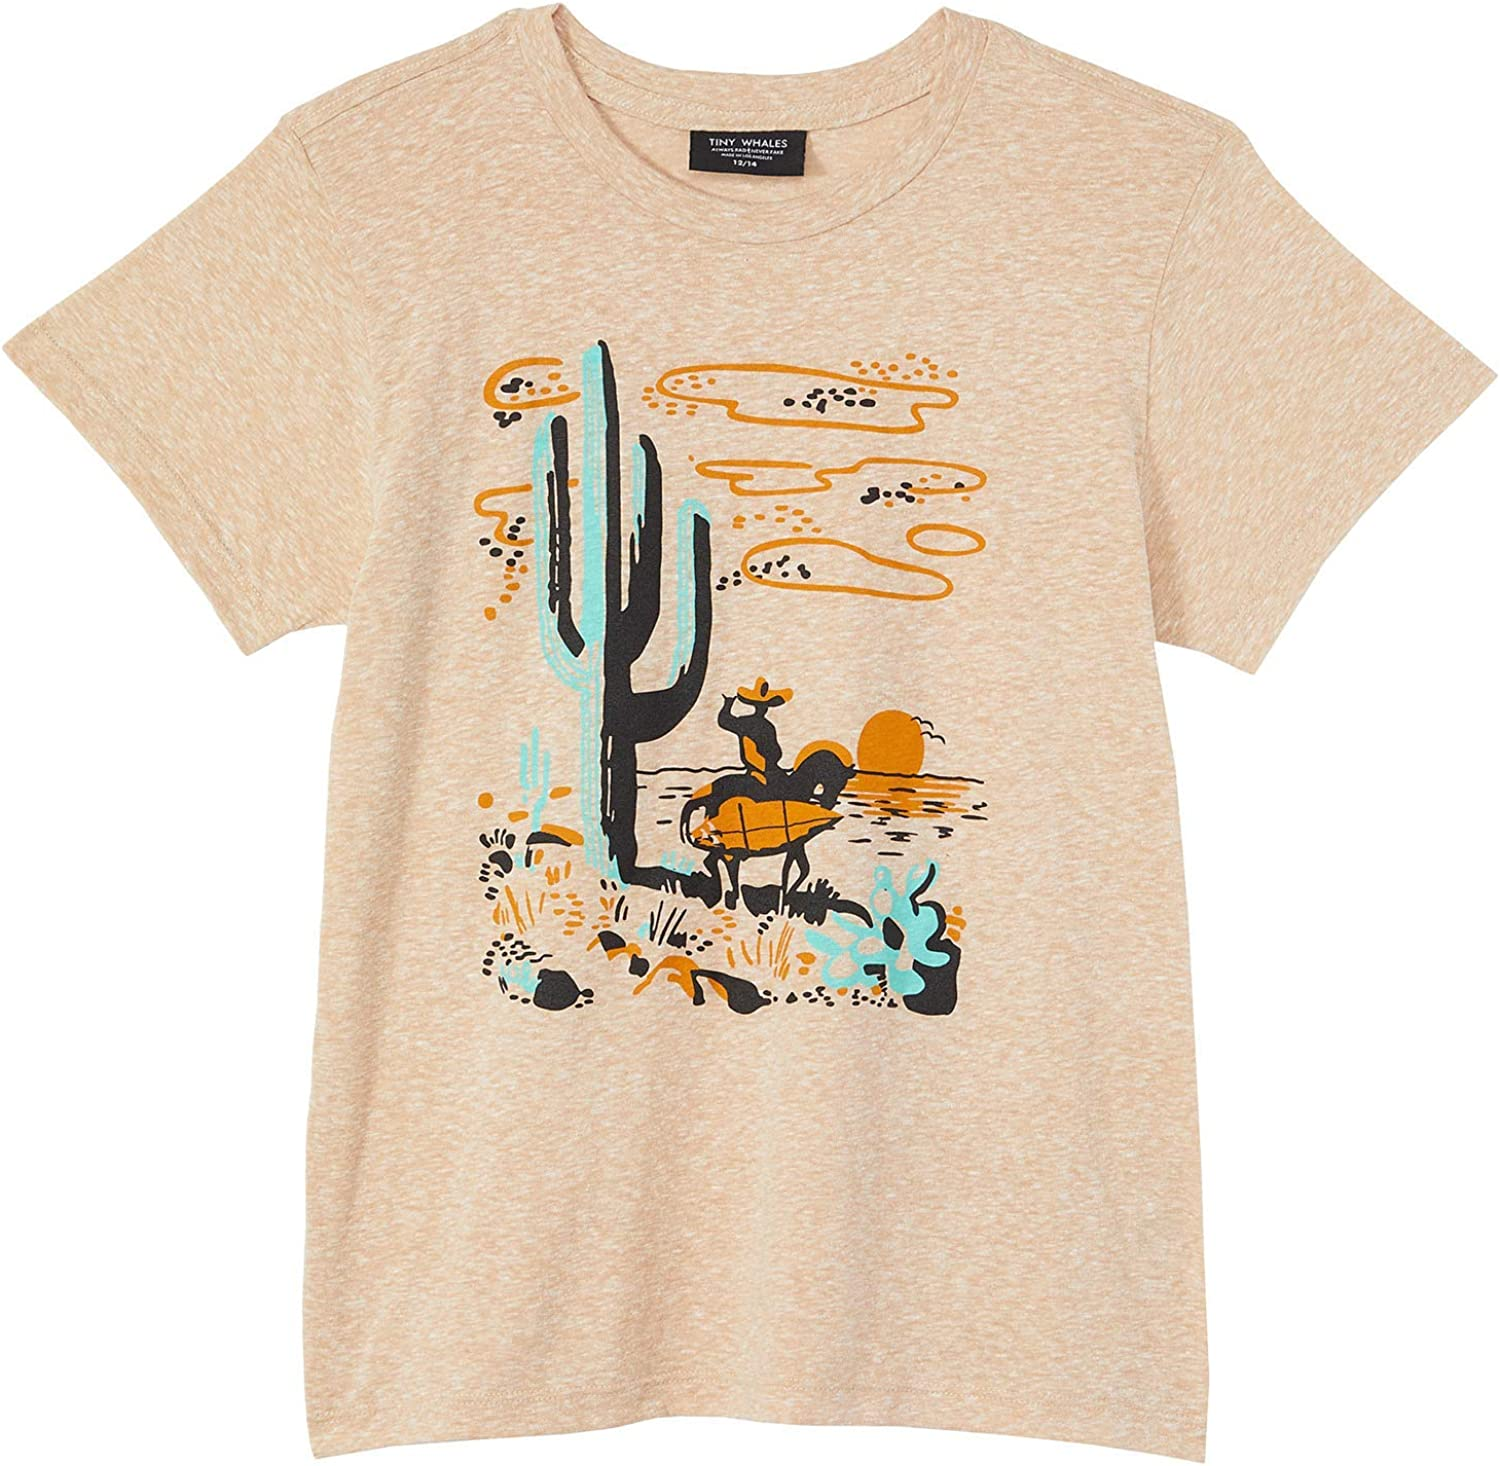 Tiny Whales Boy's in Search for Surf/Surfer in Desert Graphic Tee (Toddler/Little Kids/Big Kids)